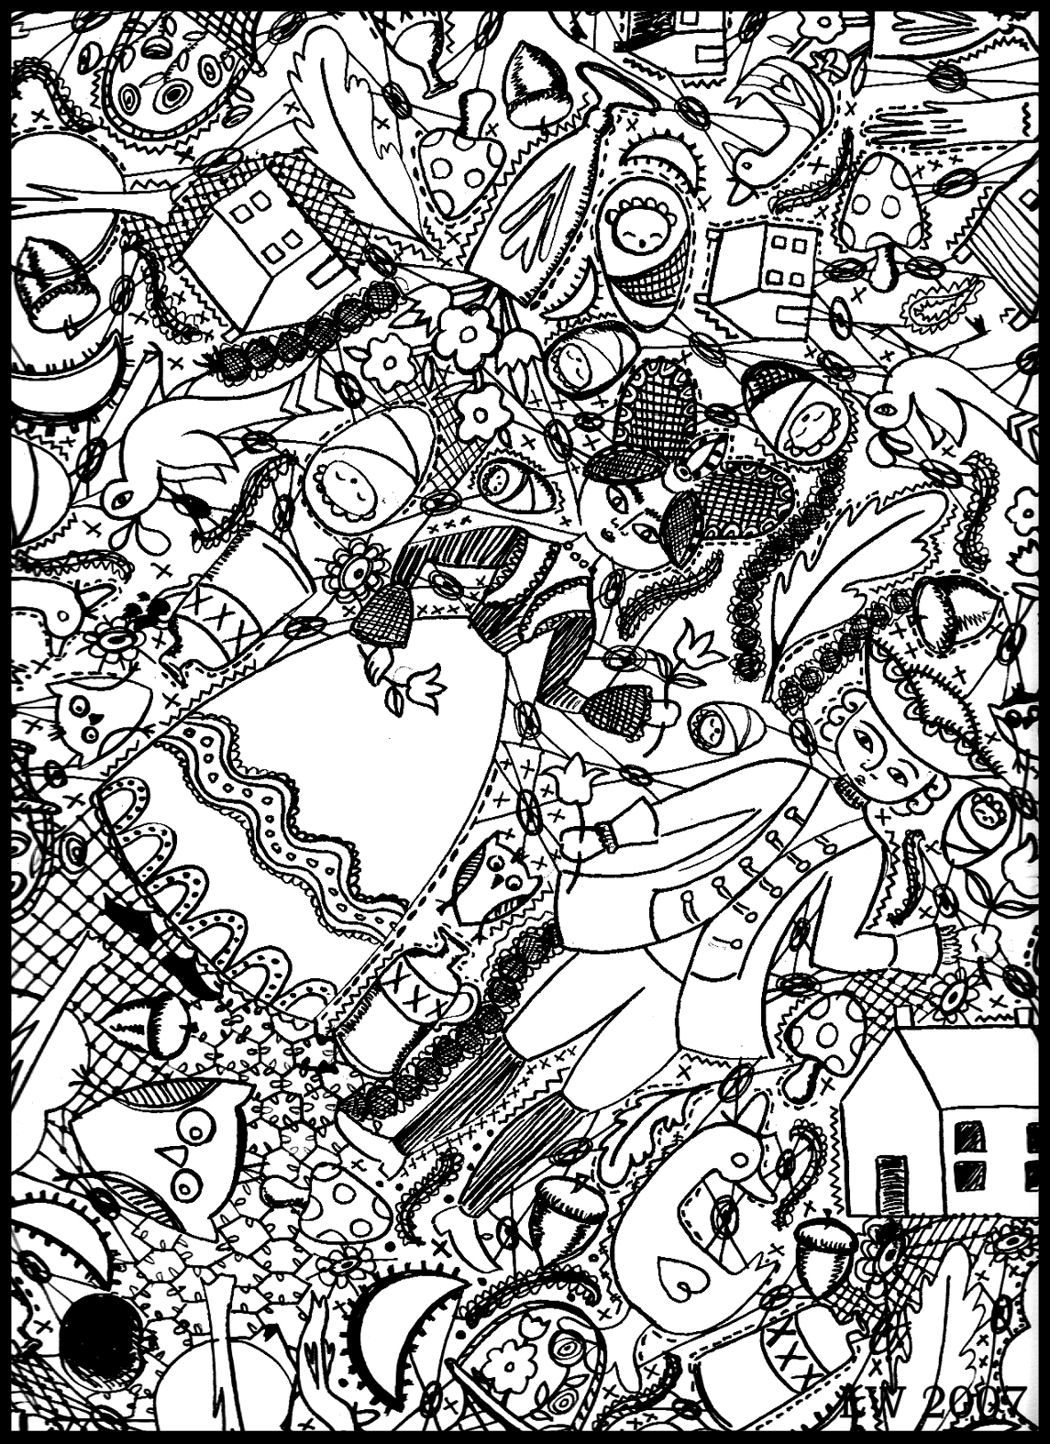 free doodle art to print and color doodle art by pierre fihue coloring page free printable doodle and to print art color free